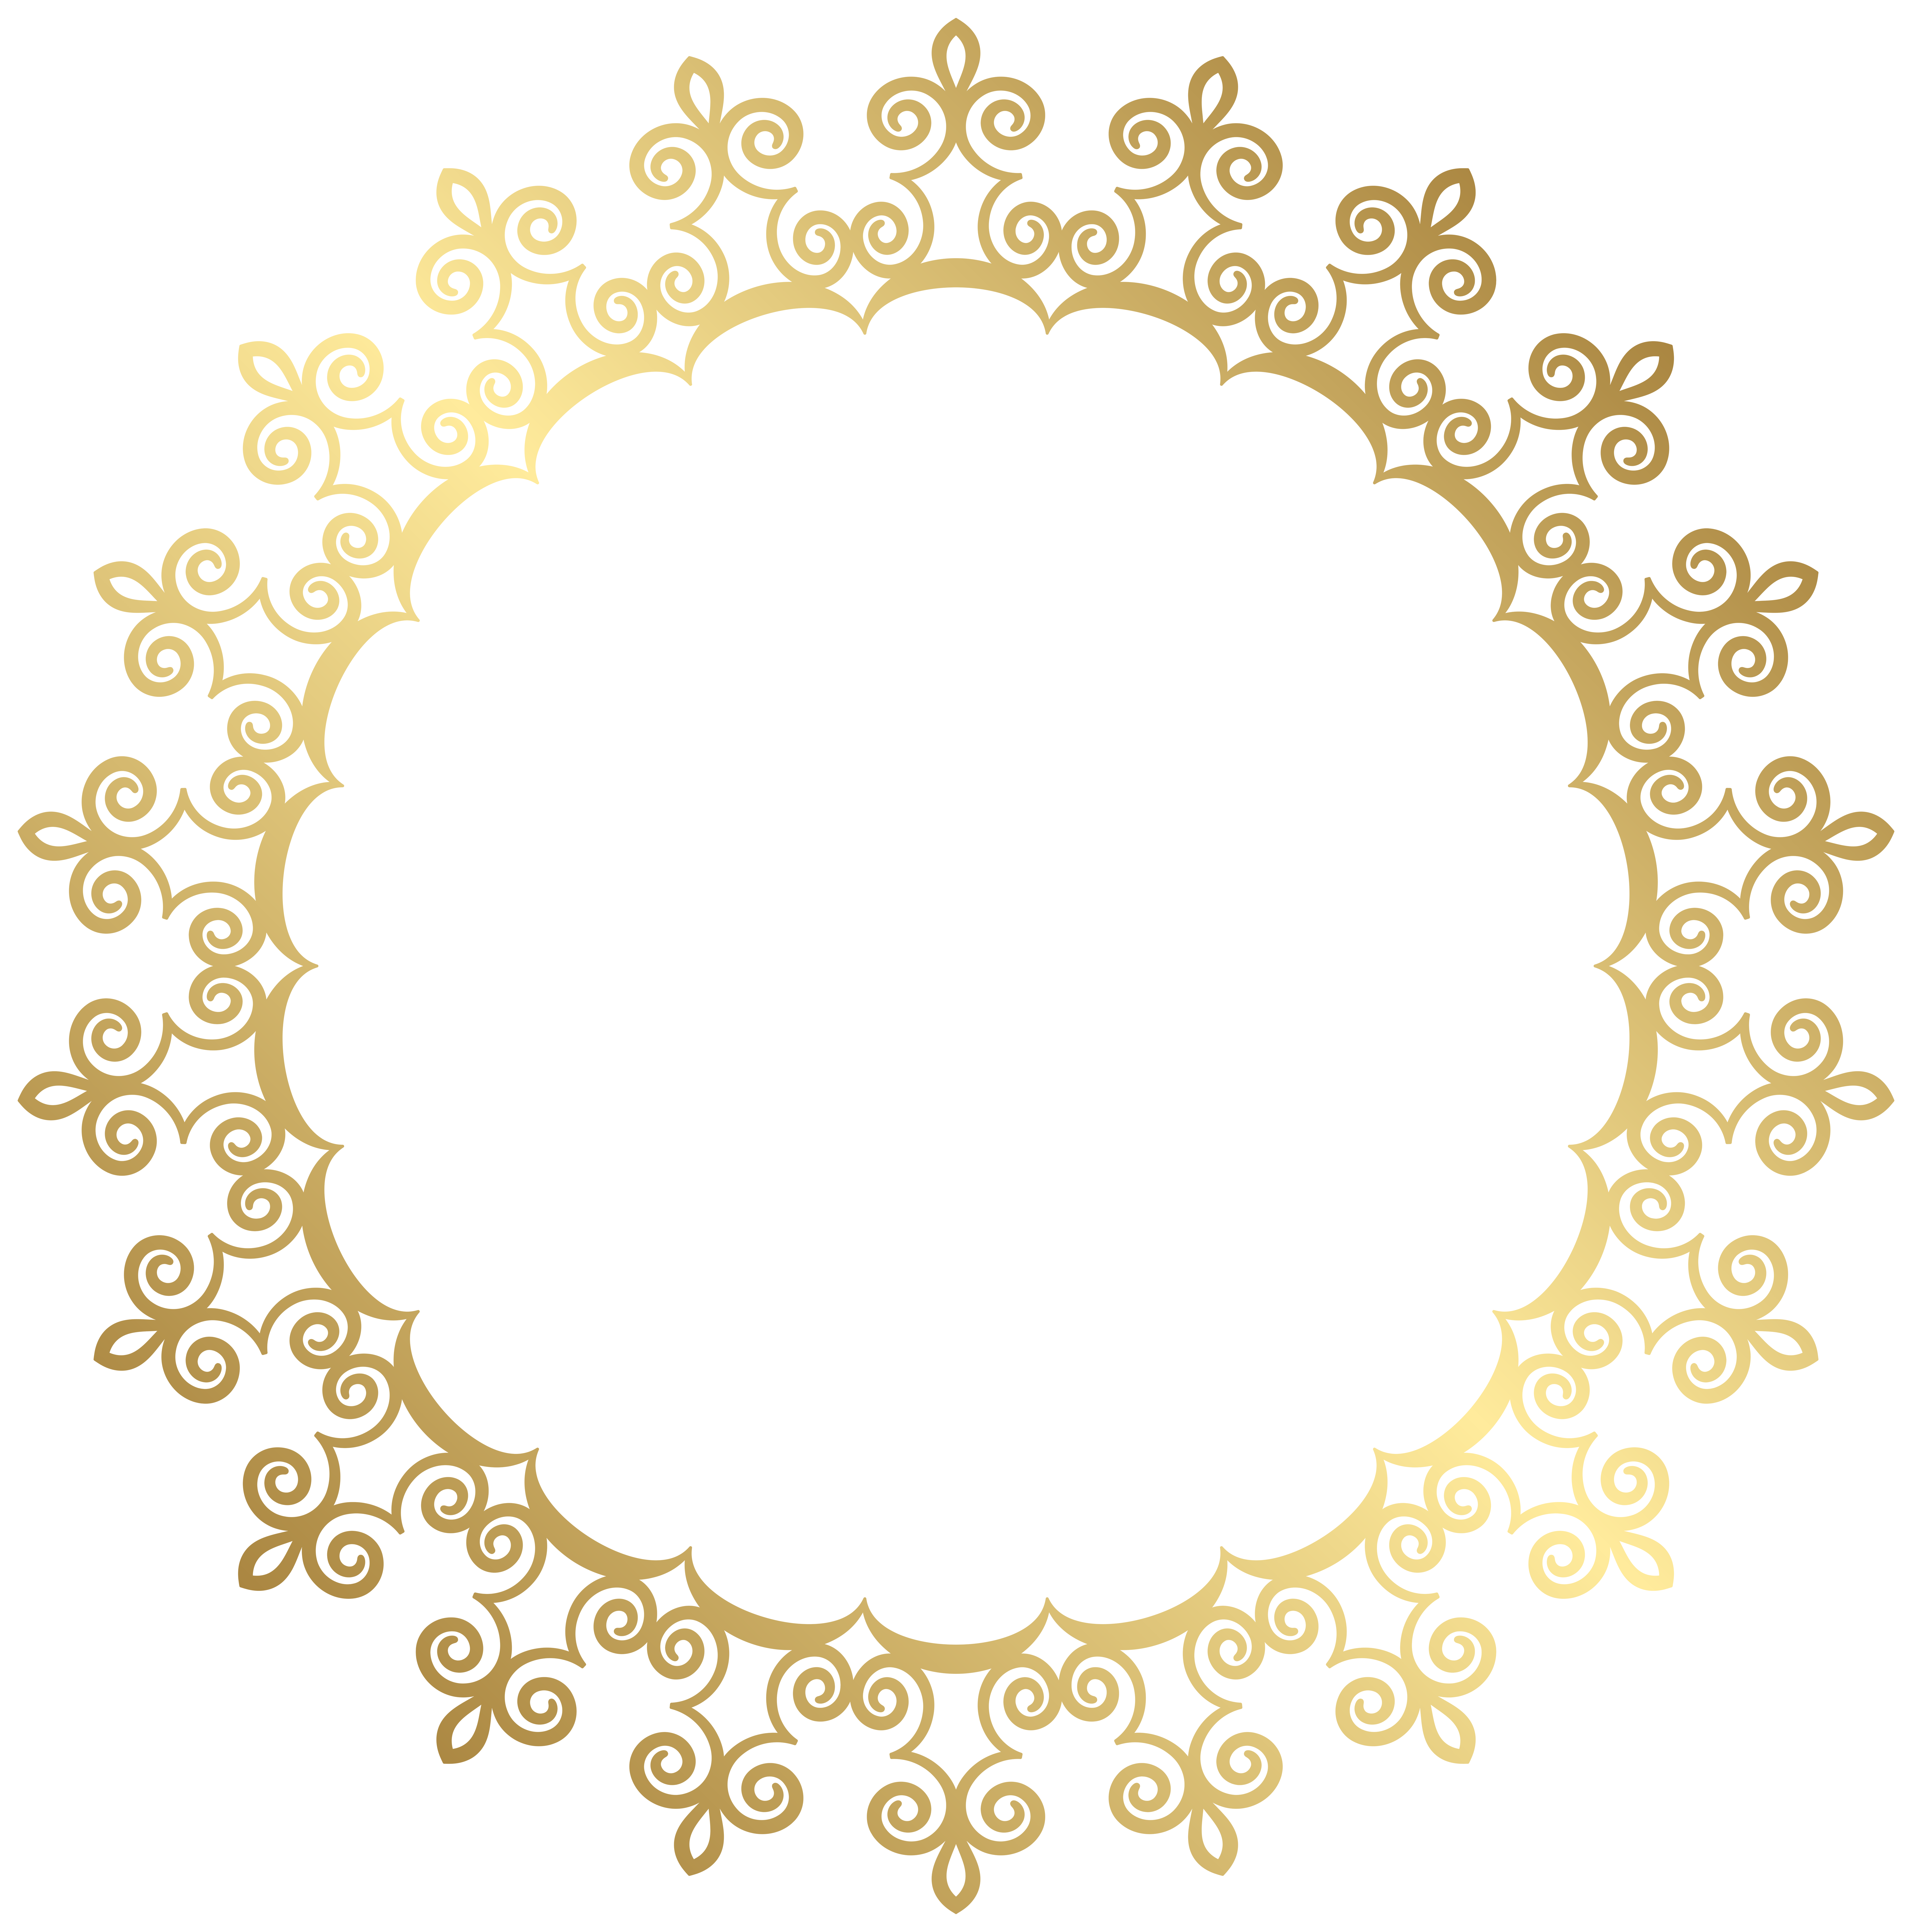 clipart royalty free stock Round border frame transparent. Gold clipart boarder